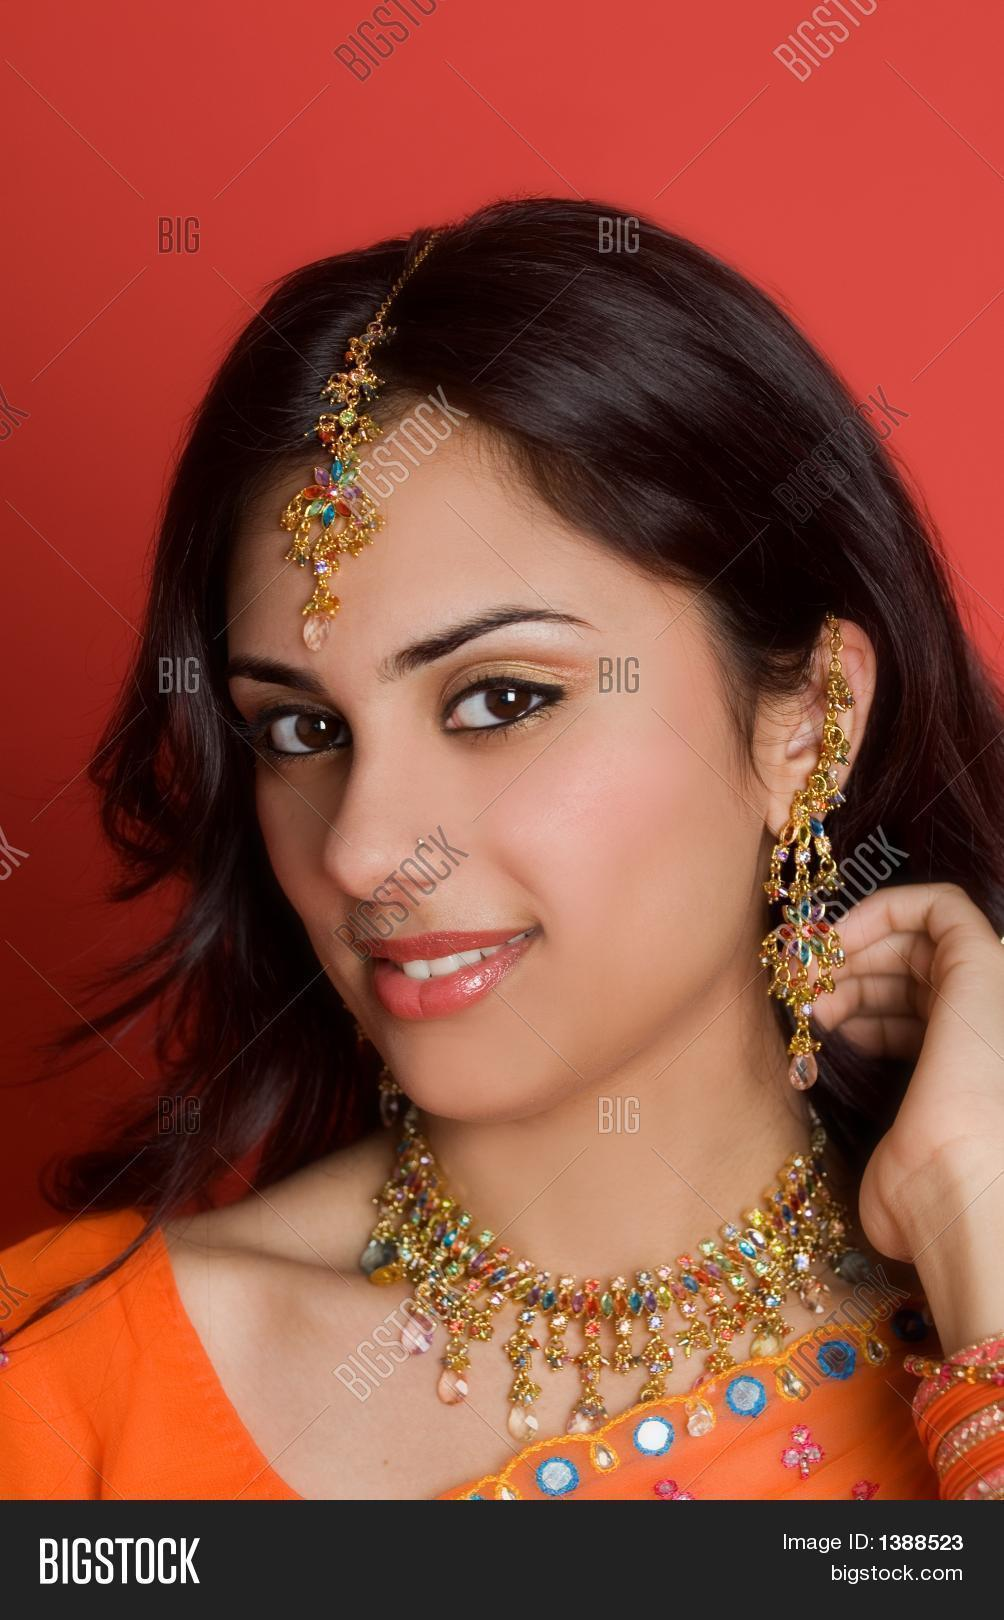 hindu single women in mellwood Find women seeking men listings on oodle classifieds join millions of people using oodle to find great personal ads don't miss what's happening in your neighborhood.